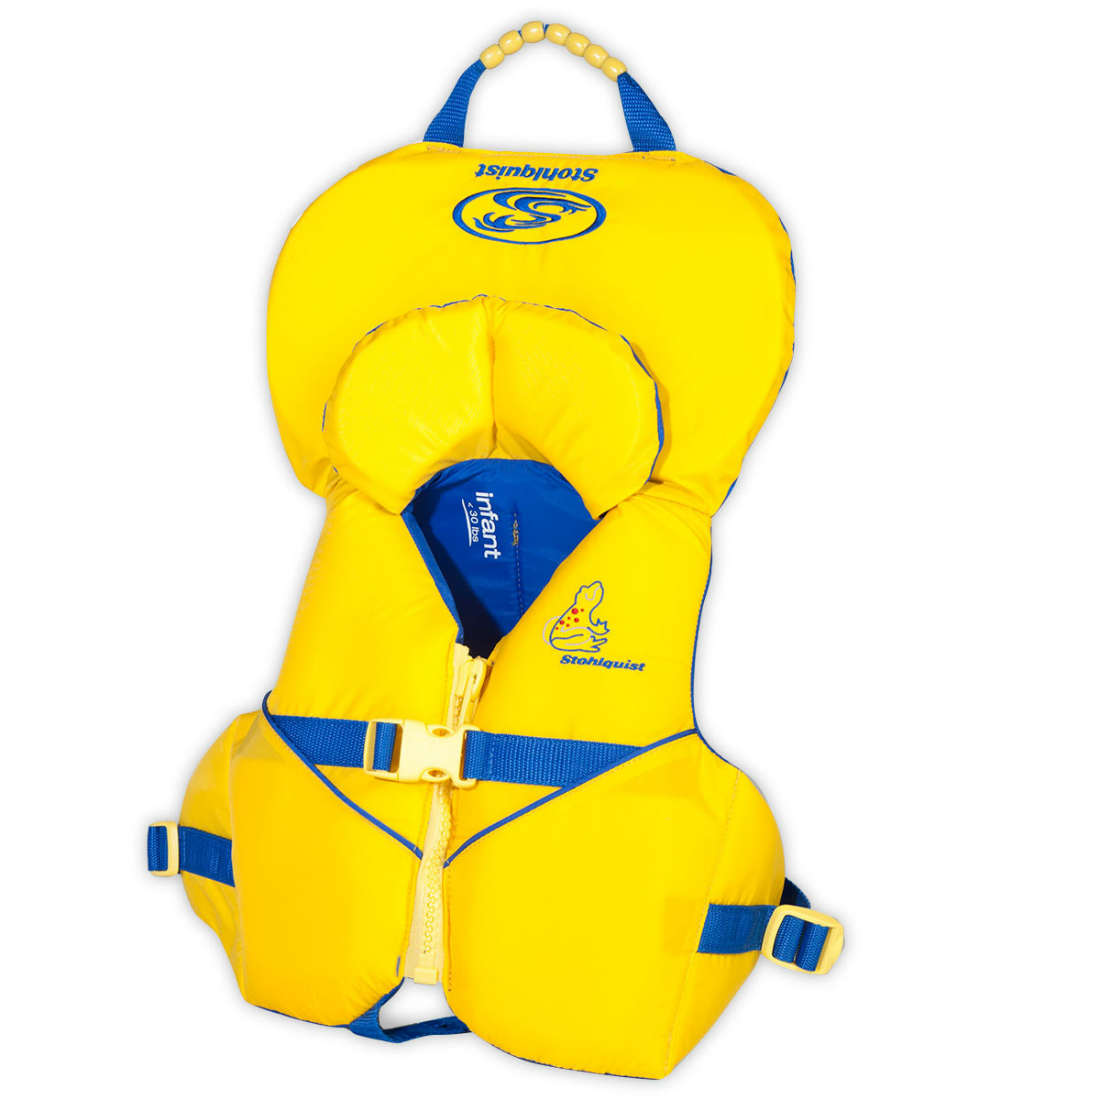 Stohlquist-Infant-Life-Jacket